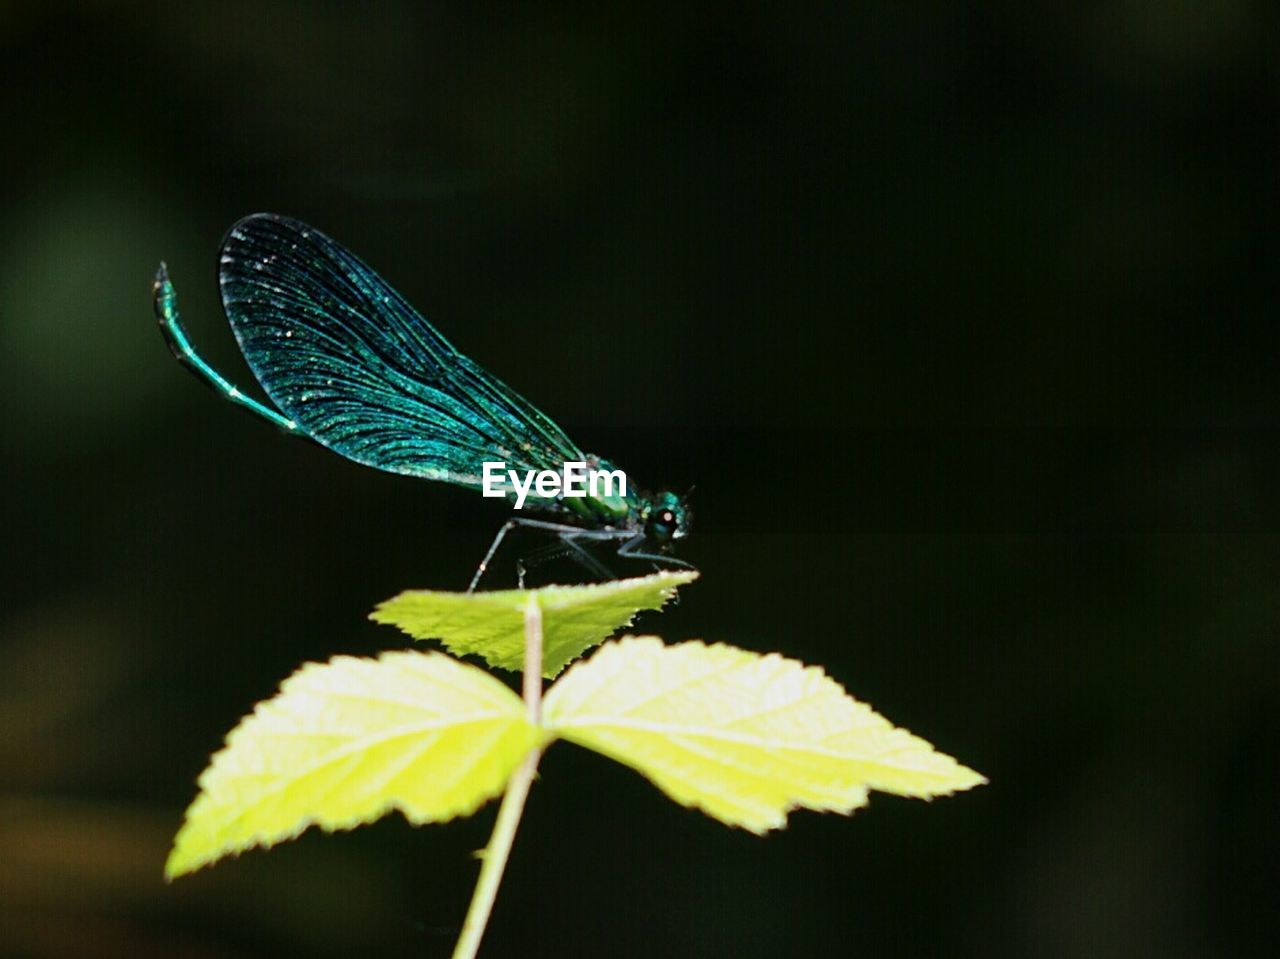 leaf, insect, animal themes, animals in the wild, damselfly, green color, one animal, focus on foreground, nature, no people, day, outdoors, close-up, animal wildlife